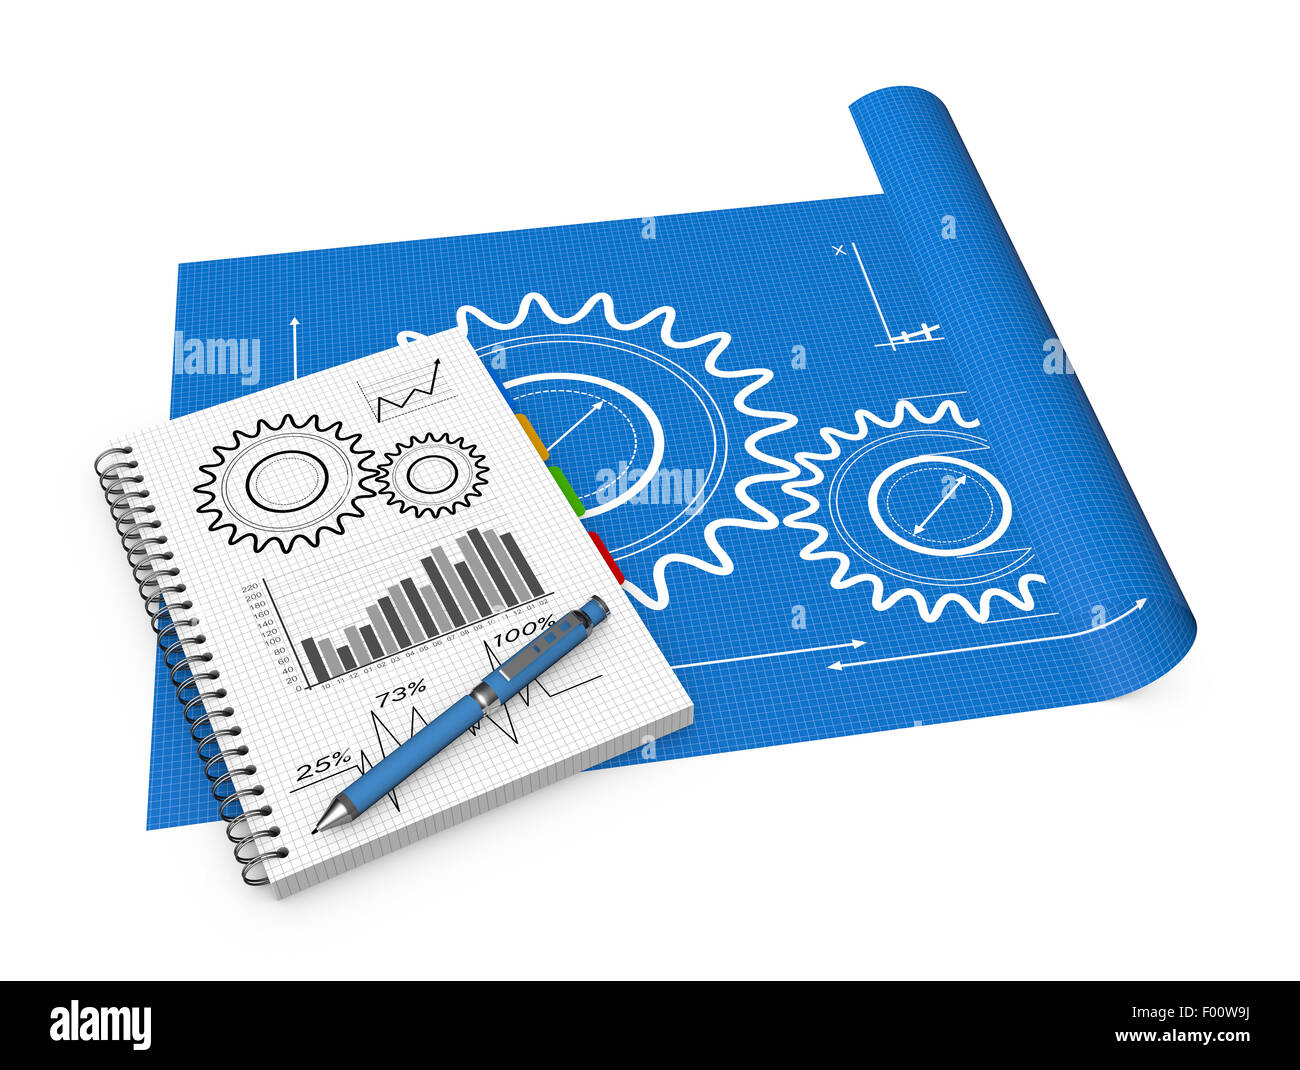 Blueprint development project as concept stock photo 86071710 alamy blueprint development project as concept malvernweather Image collections